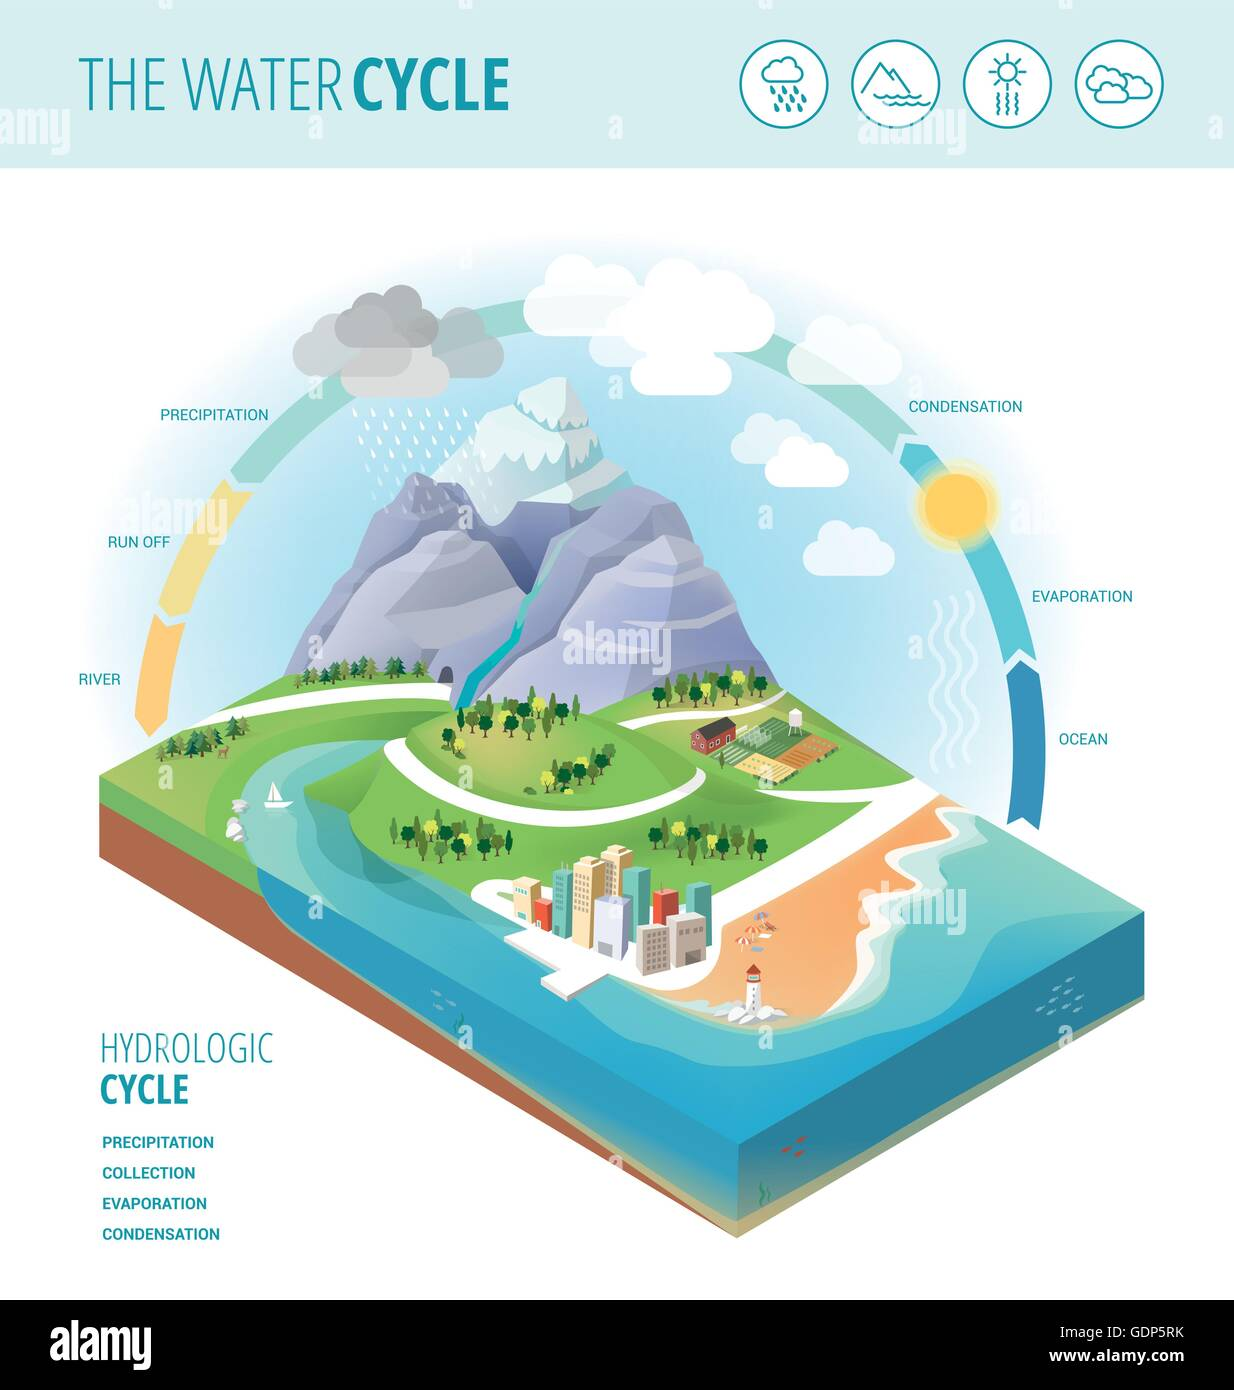 water cycle diagram stock photos water cycle diagram. Black Bedroom Furniture Sets. Home Design Ideas